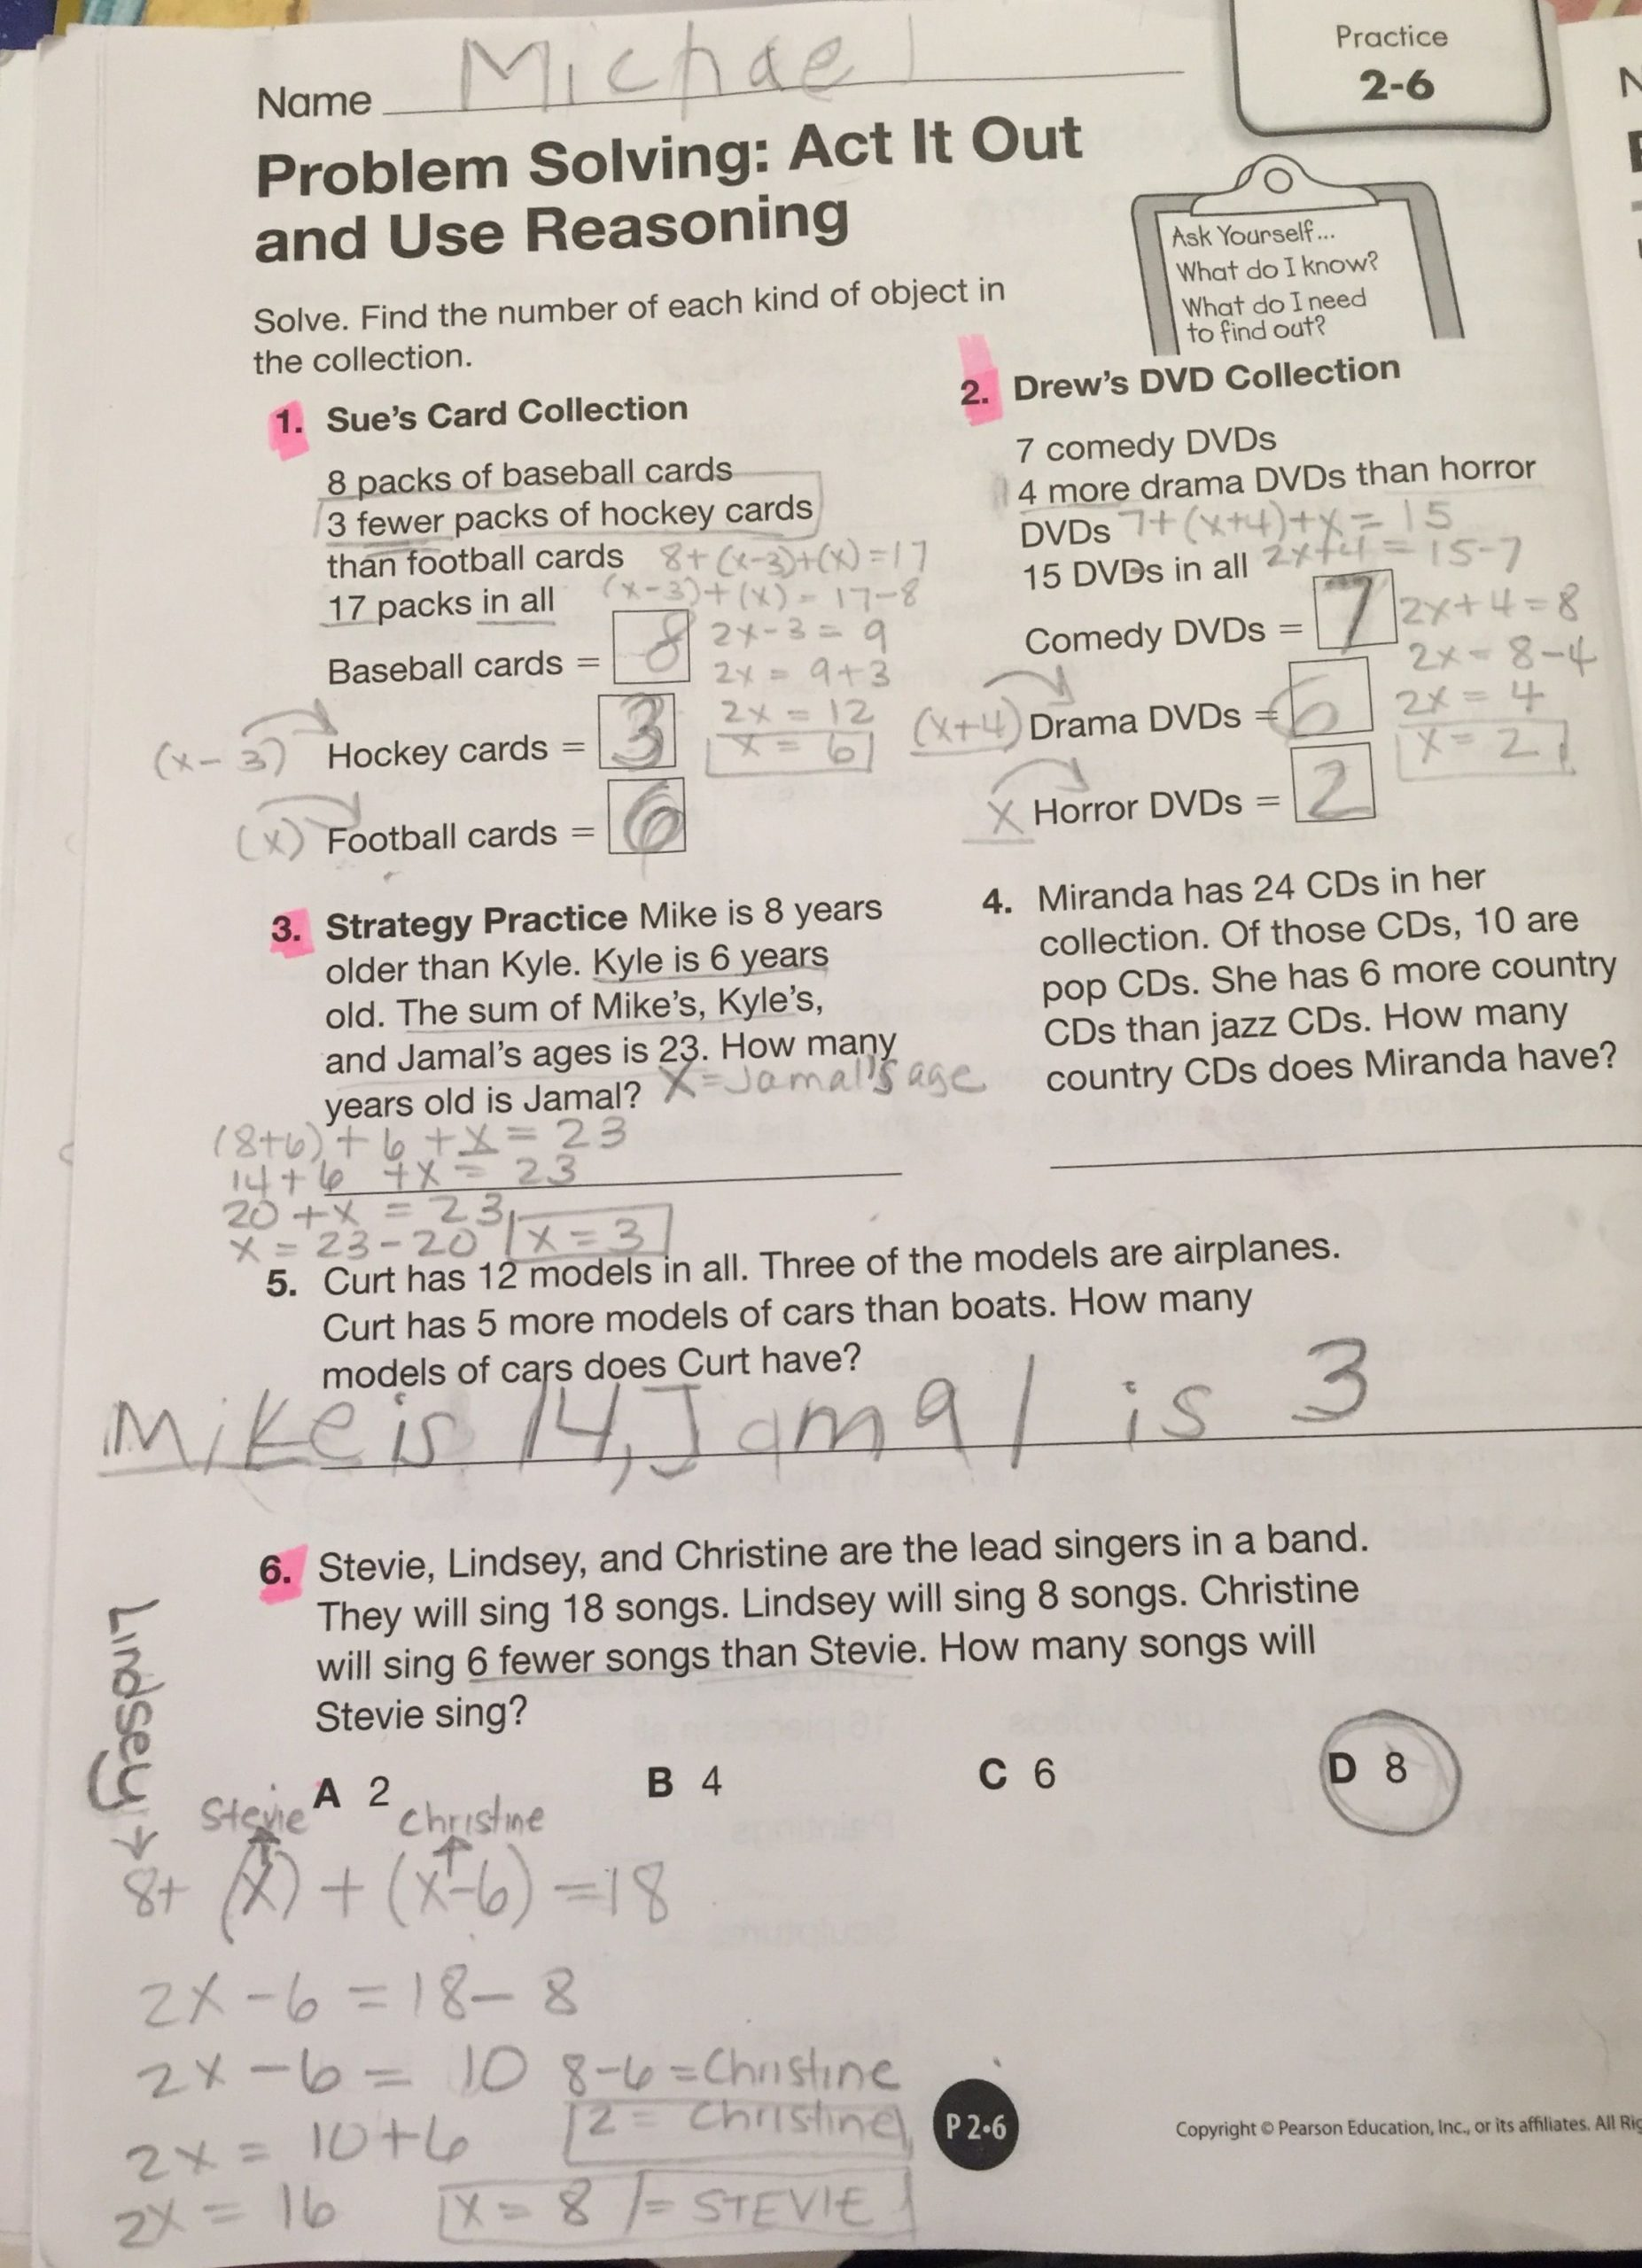 Envision Math 4th Grade Worksheets Envision Math Grade 4 topic 2 6 Problem solving Act It Out